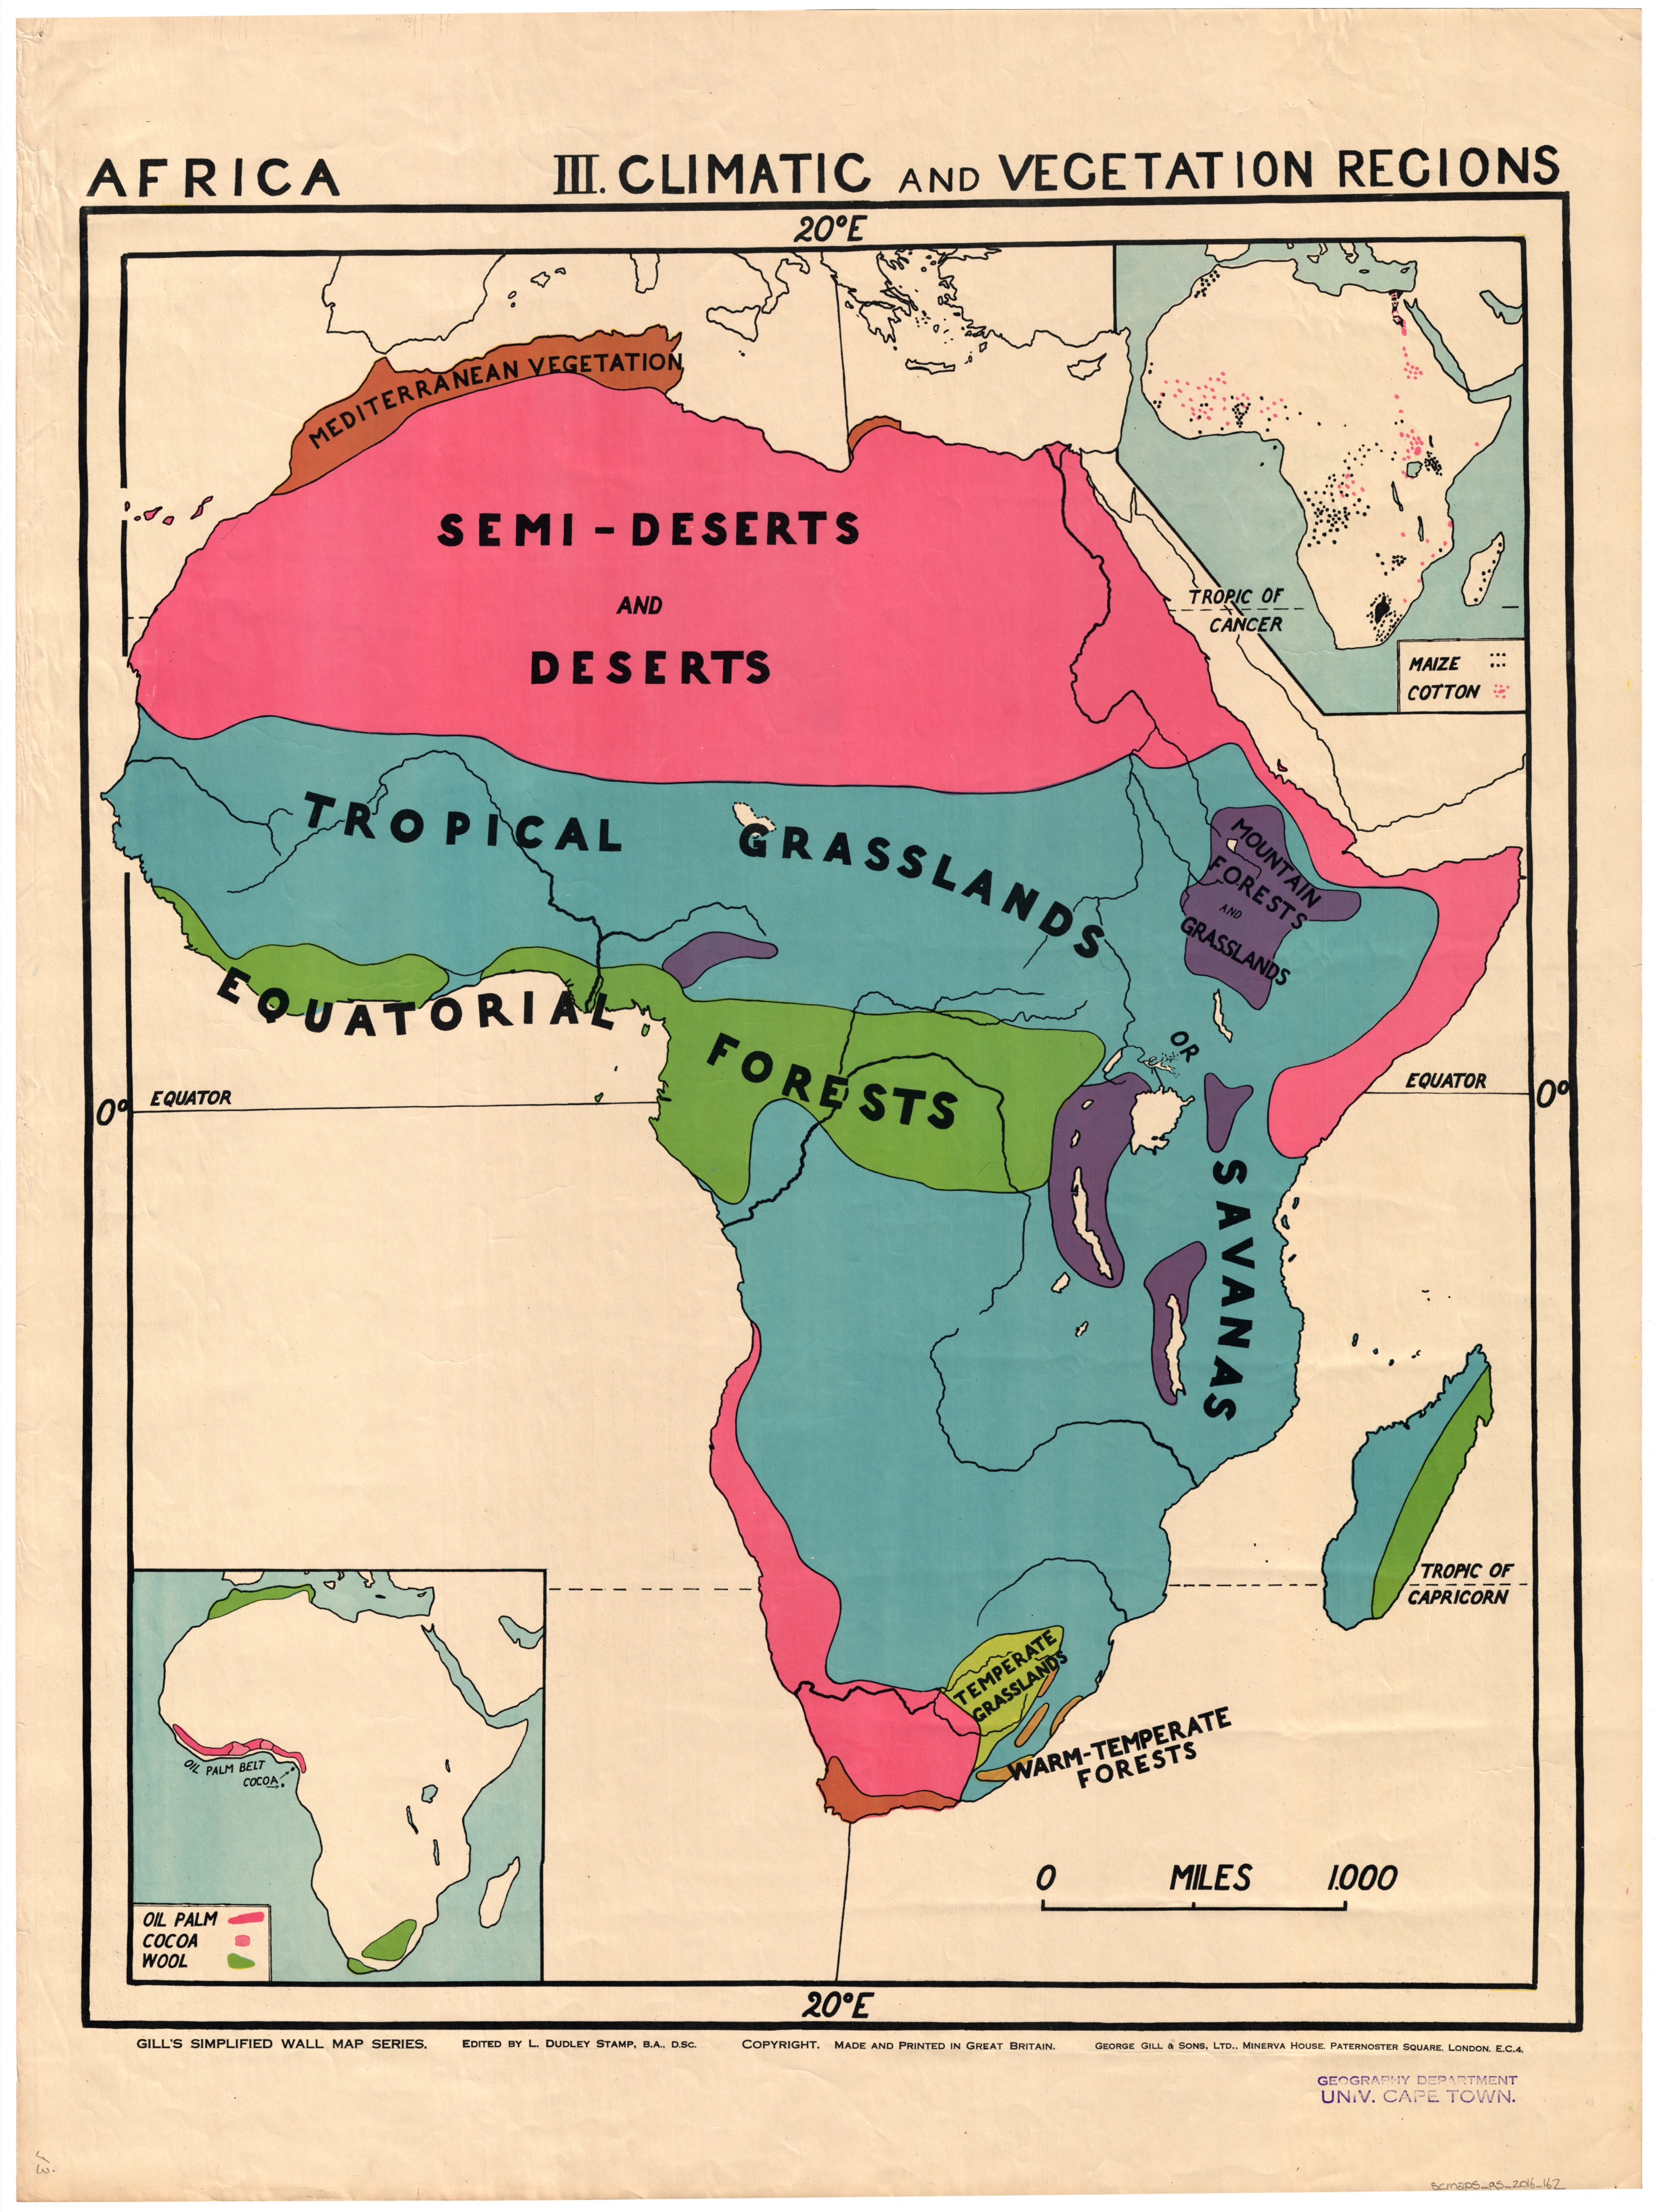 Map Of Africa Regions.Africa Climatic And Vegetation Regions Uct Libraries Digital